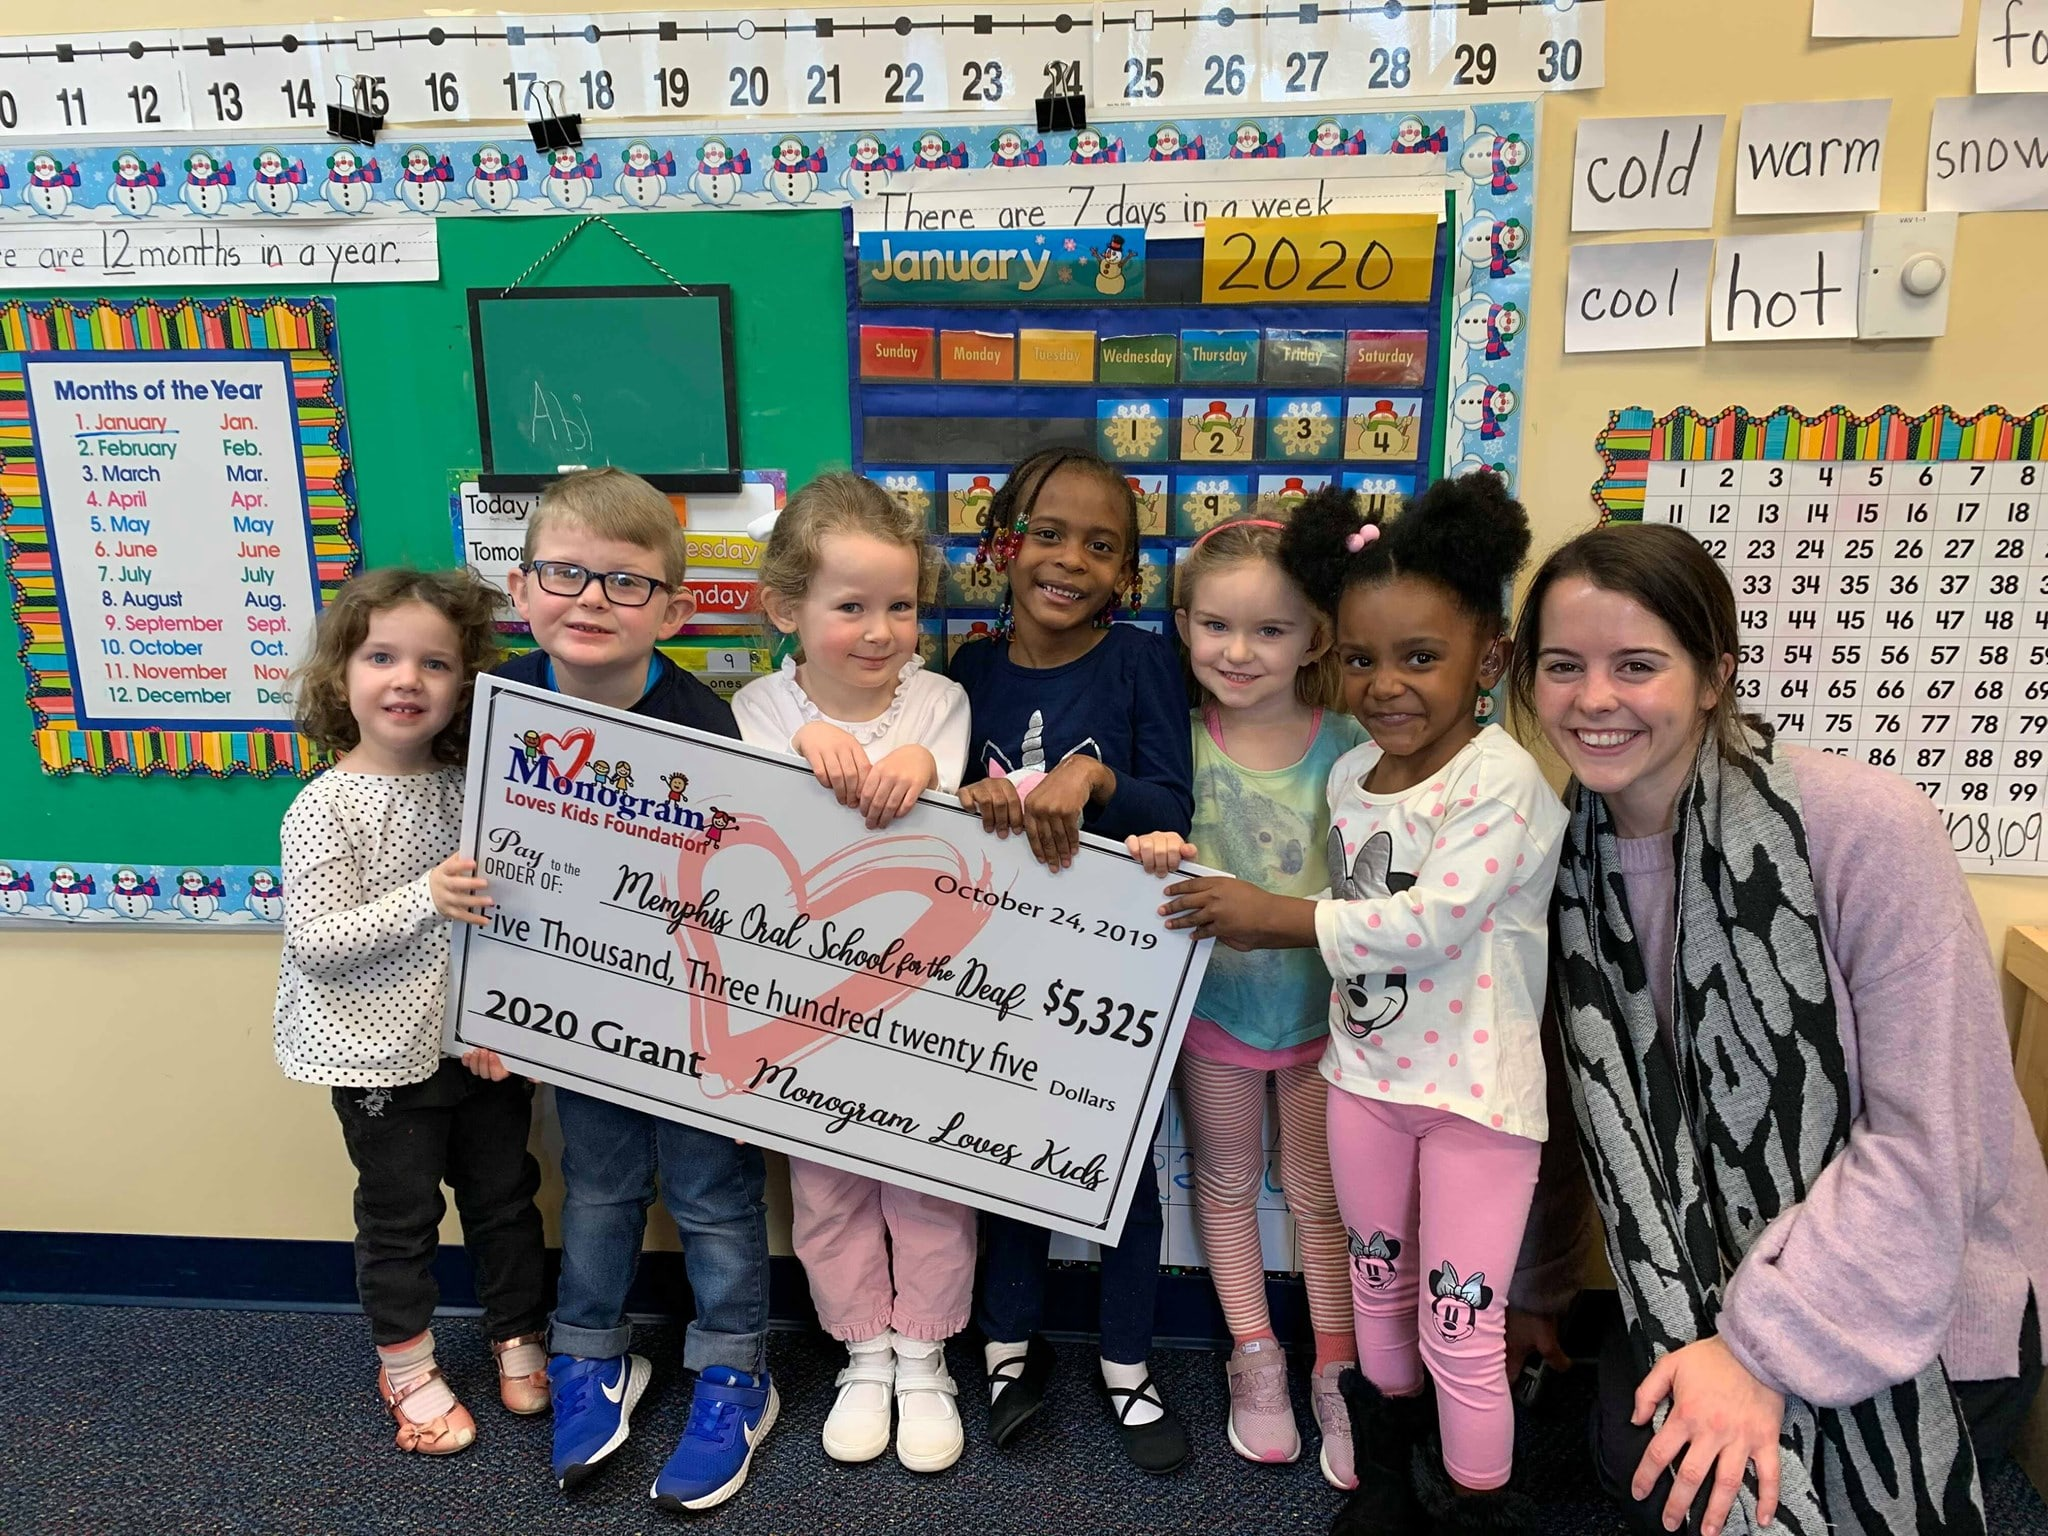 kids from Memphis Oral School for the Deaf hold a novelty check showing a $5,325 donation from the Monogram Loves Kids Foundation